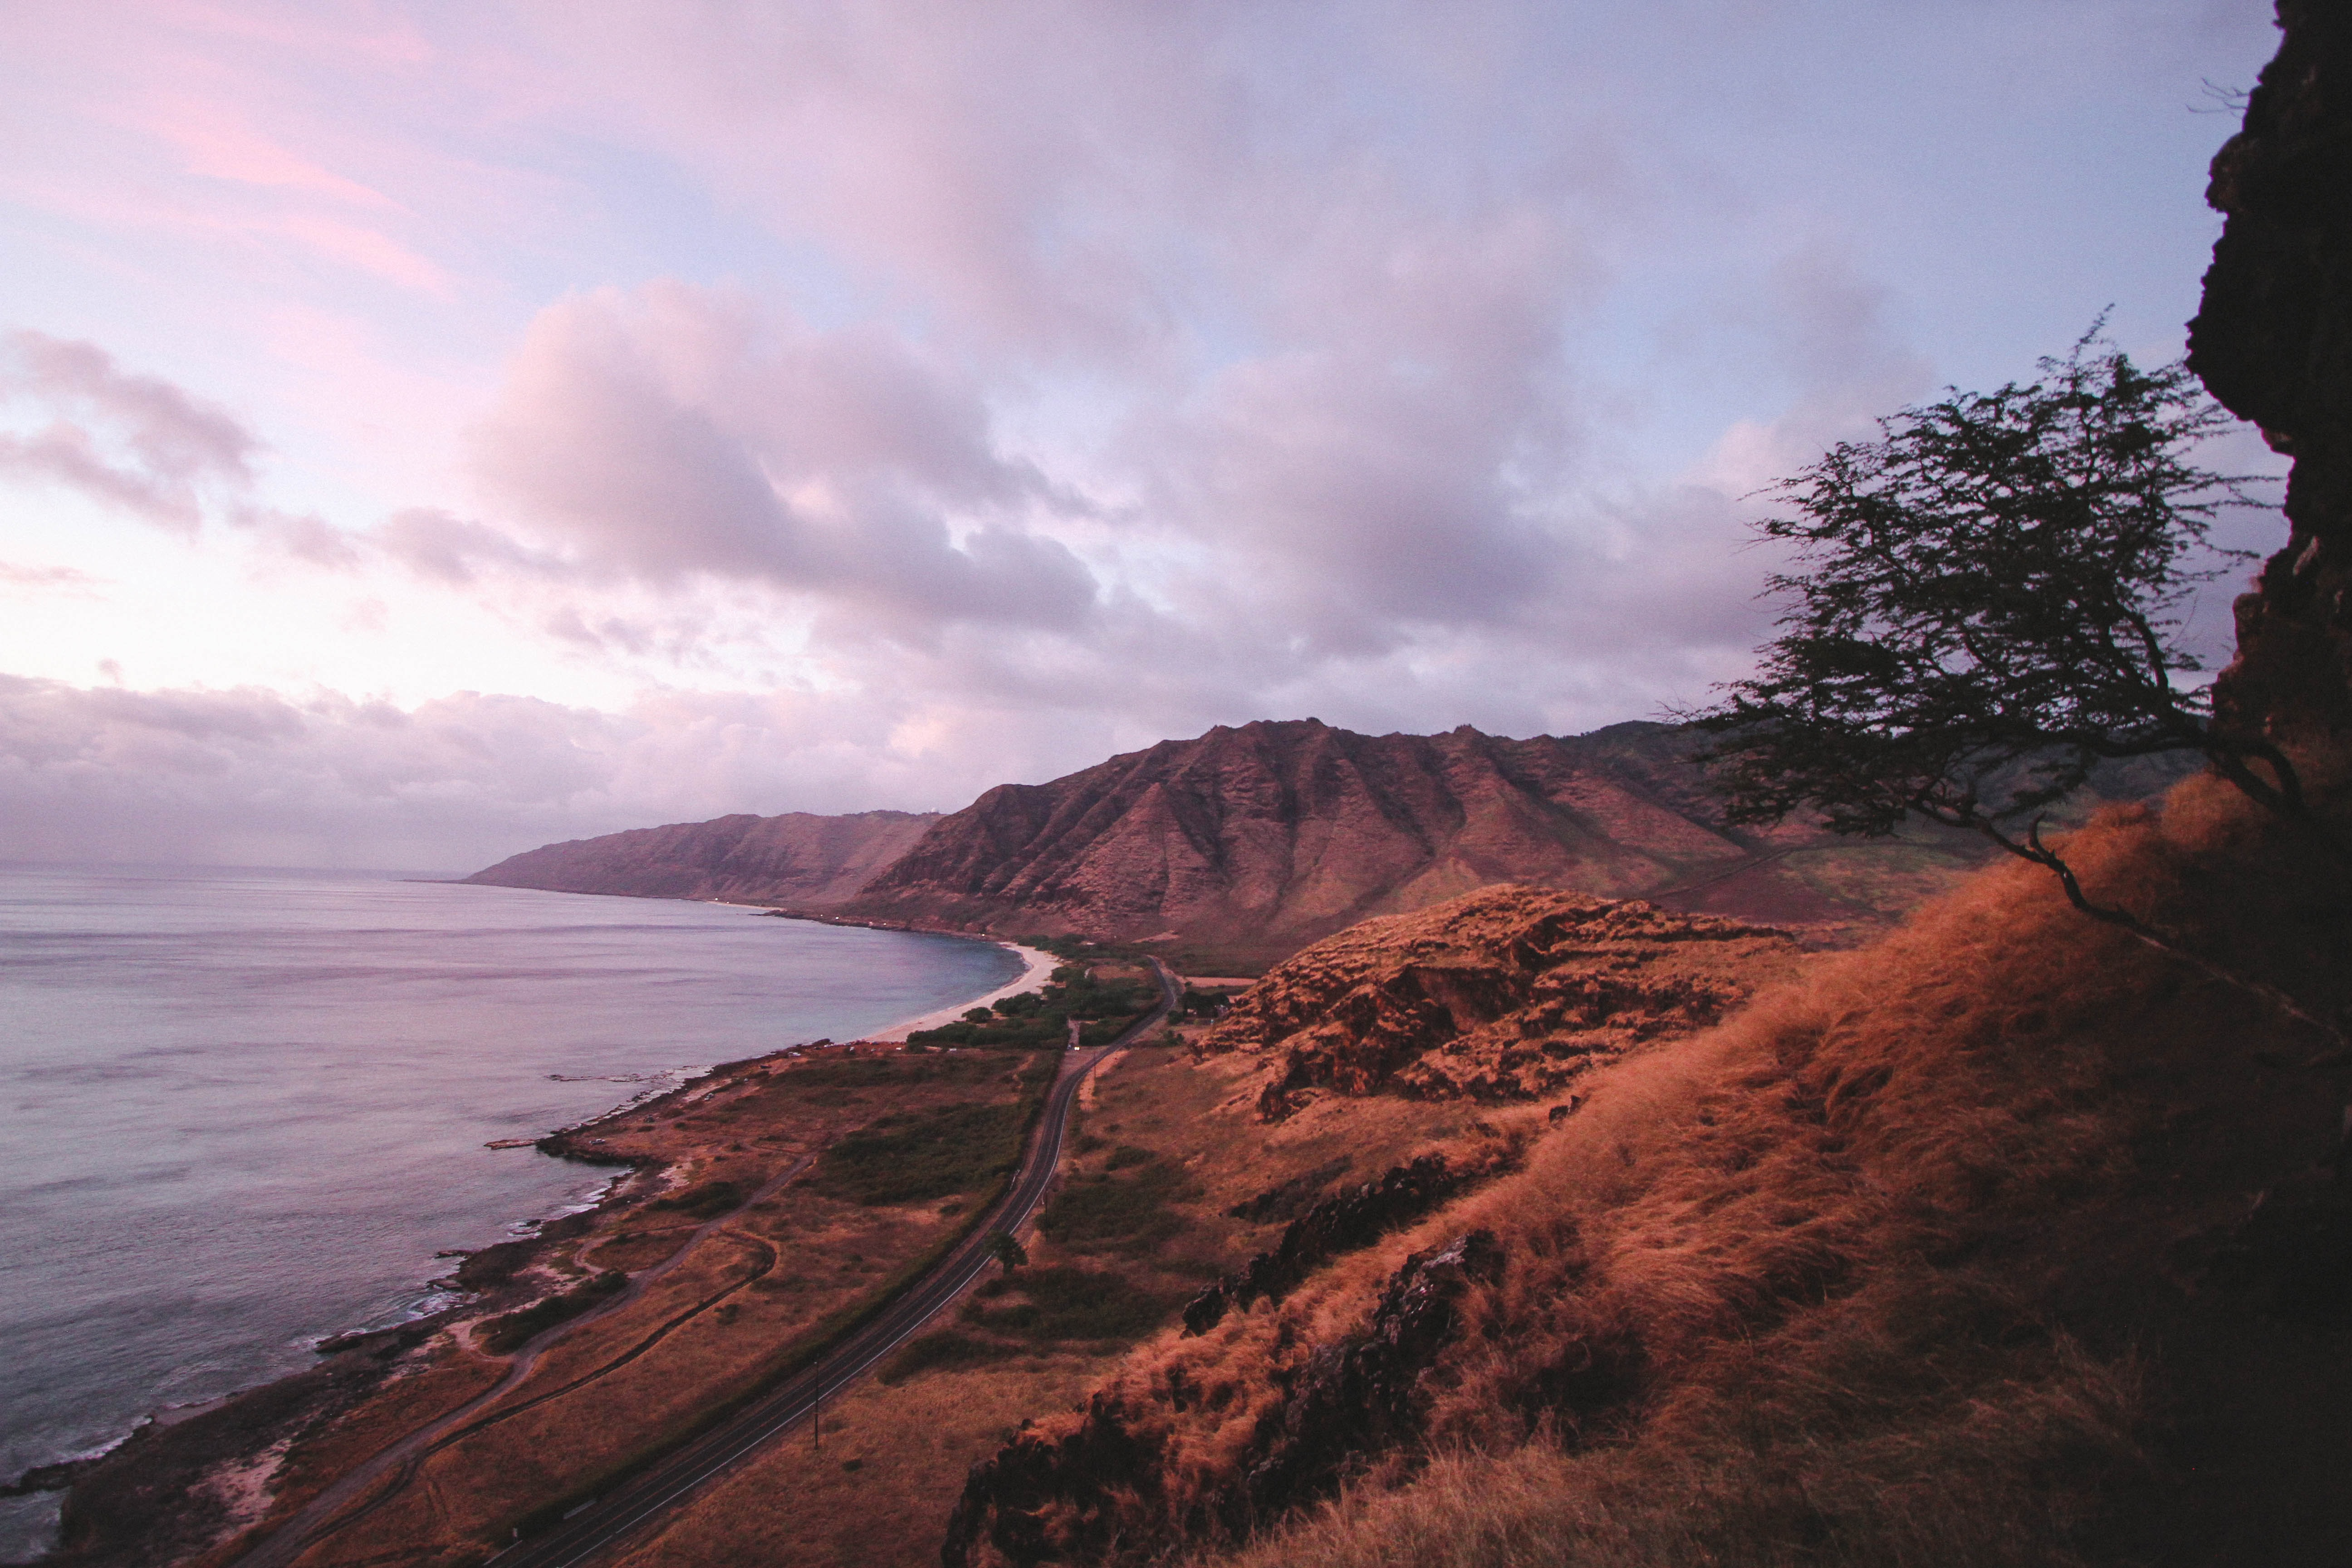 A brown, grassy mountainside along the ocean at sunset in O'ahu